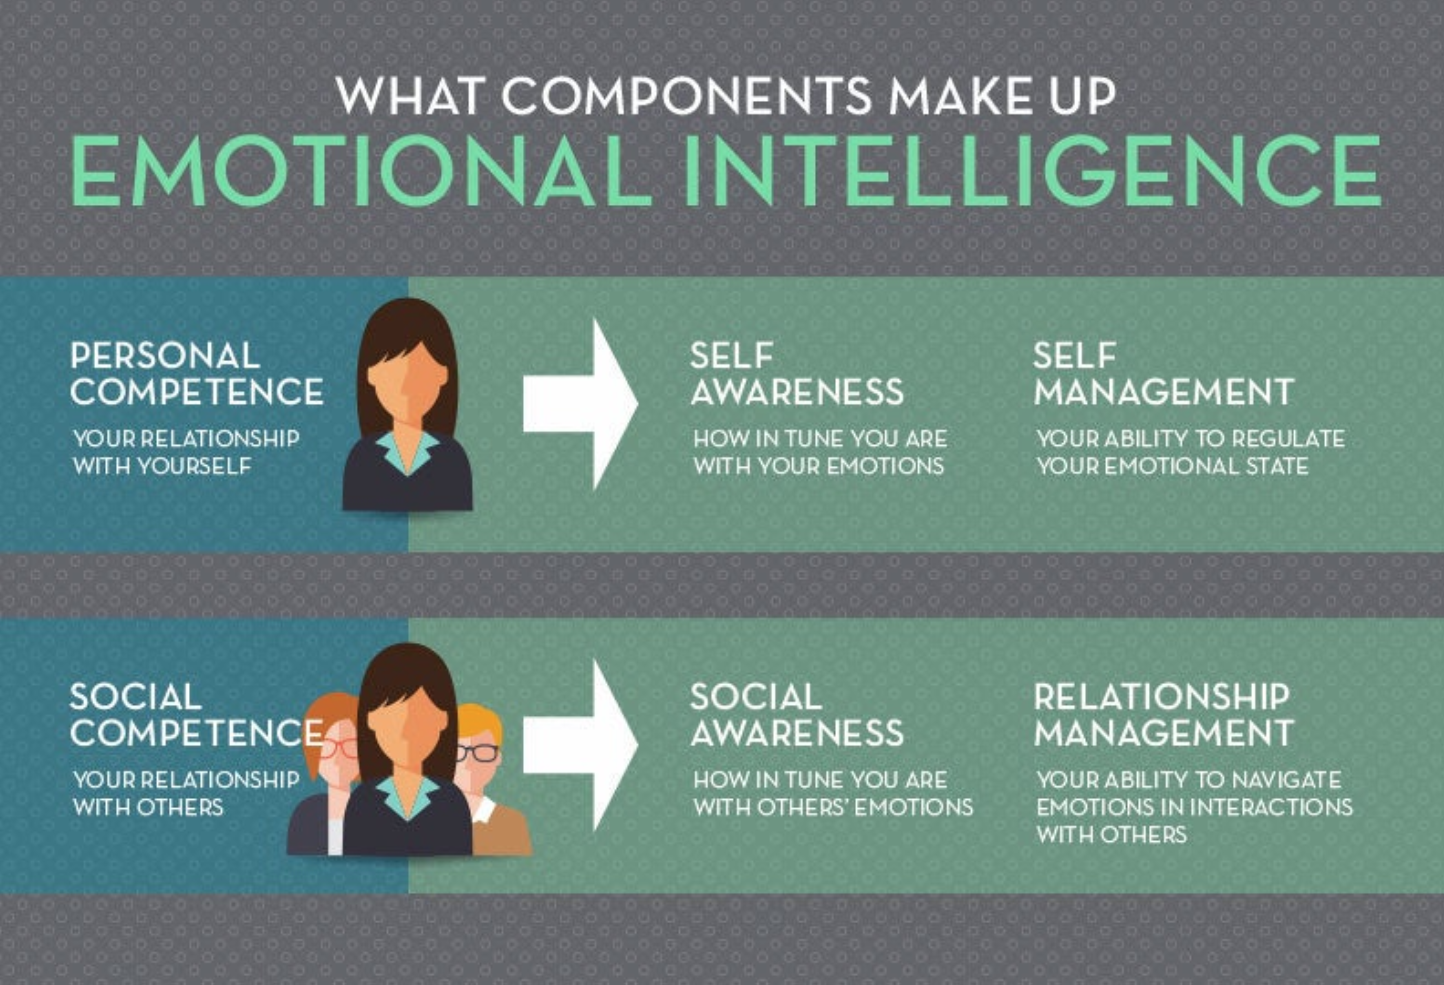 components of emotional intelligence